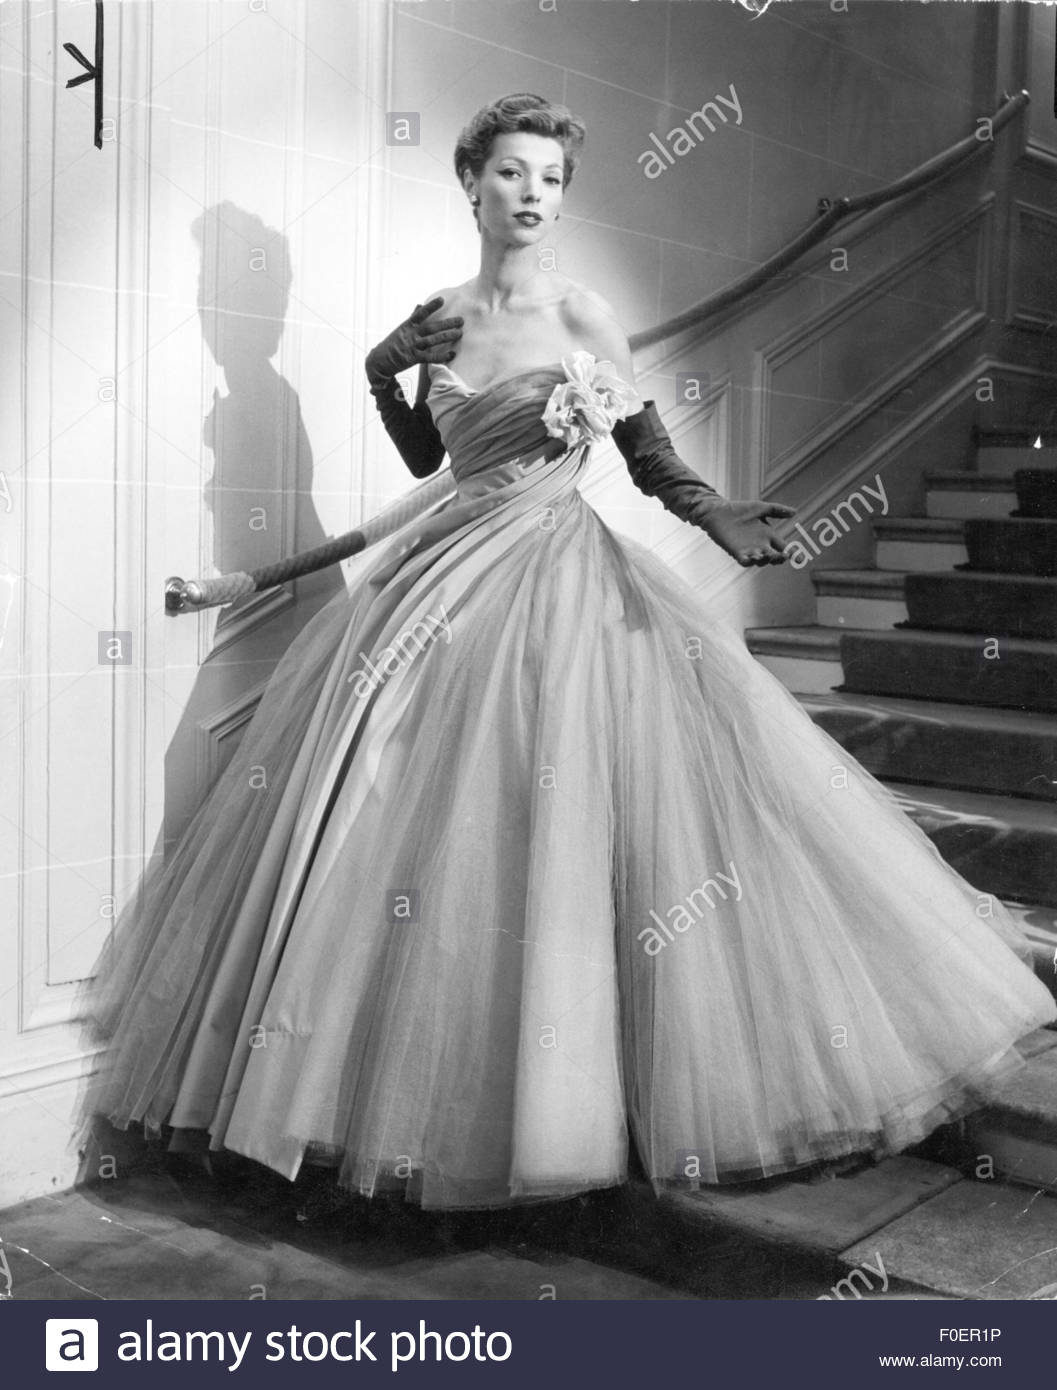 christian dior wedding dresses photo - 1